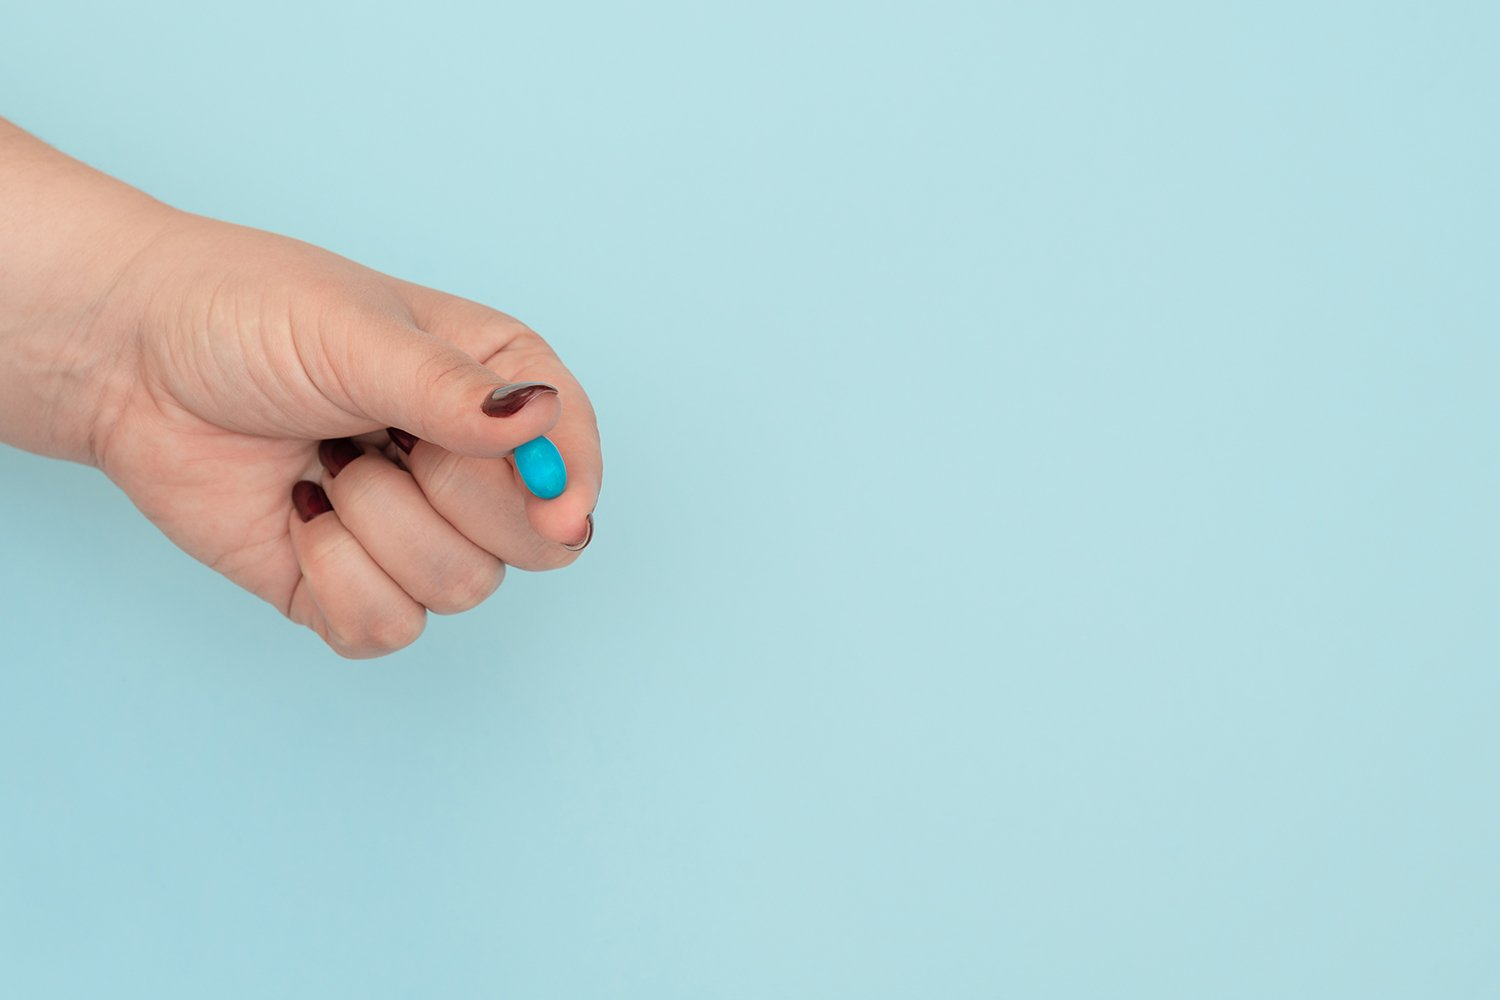 Blue pill on female hand on blue background example image 1